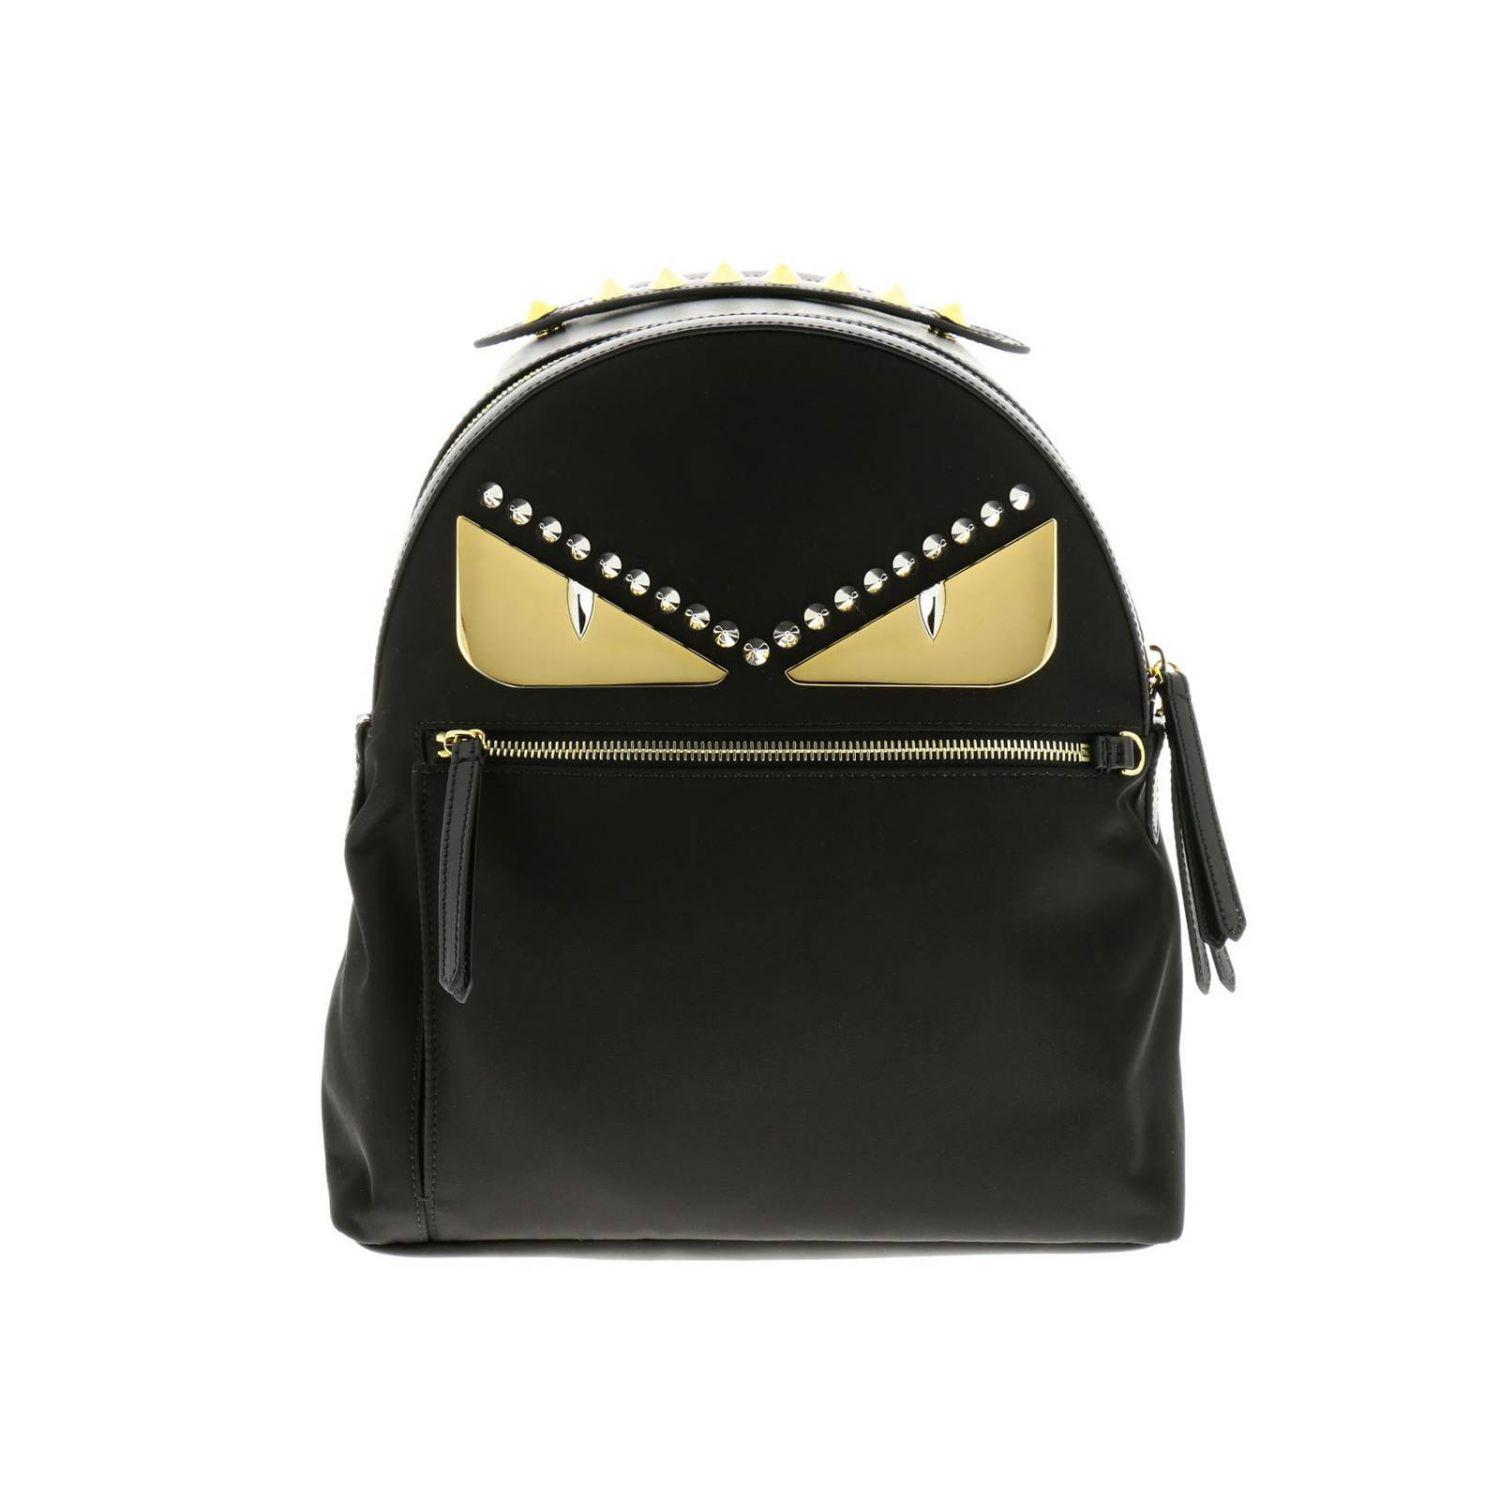 263a92d36350 Fendi. Women s Black Monster Eyes Nylon And Leather Backpack With Bag Bugs  ...